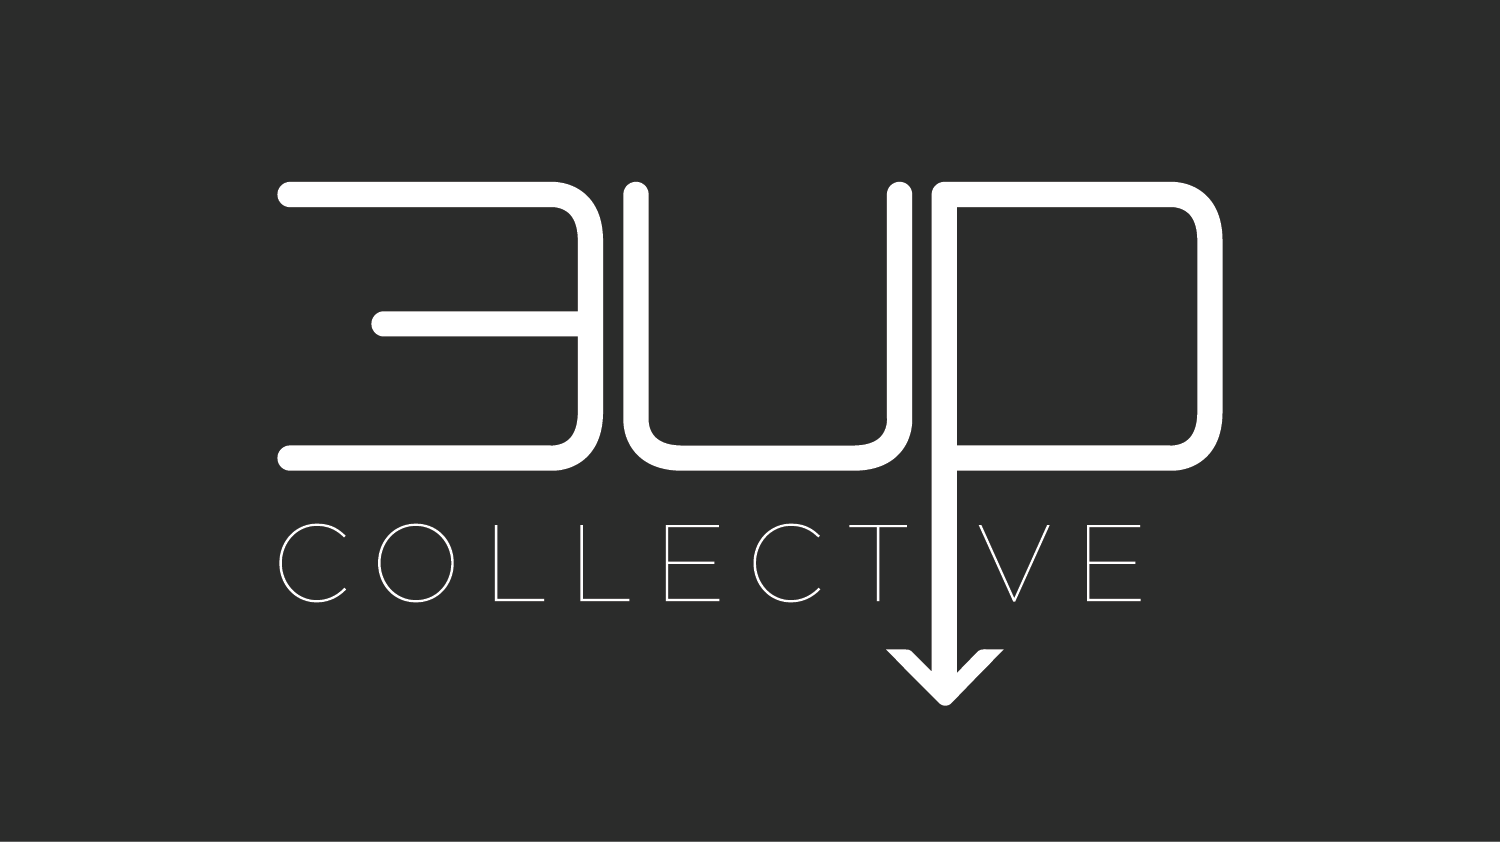 3upcollective